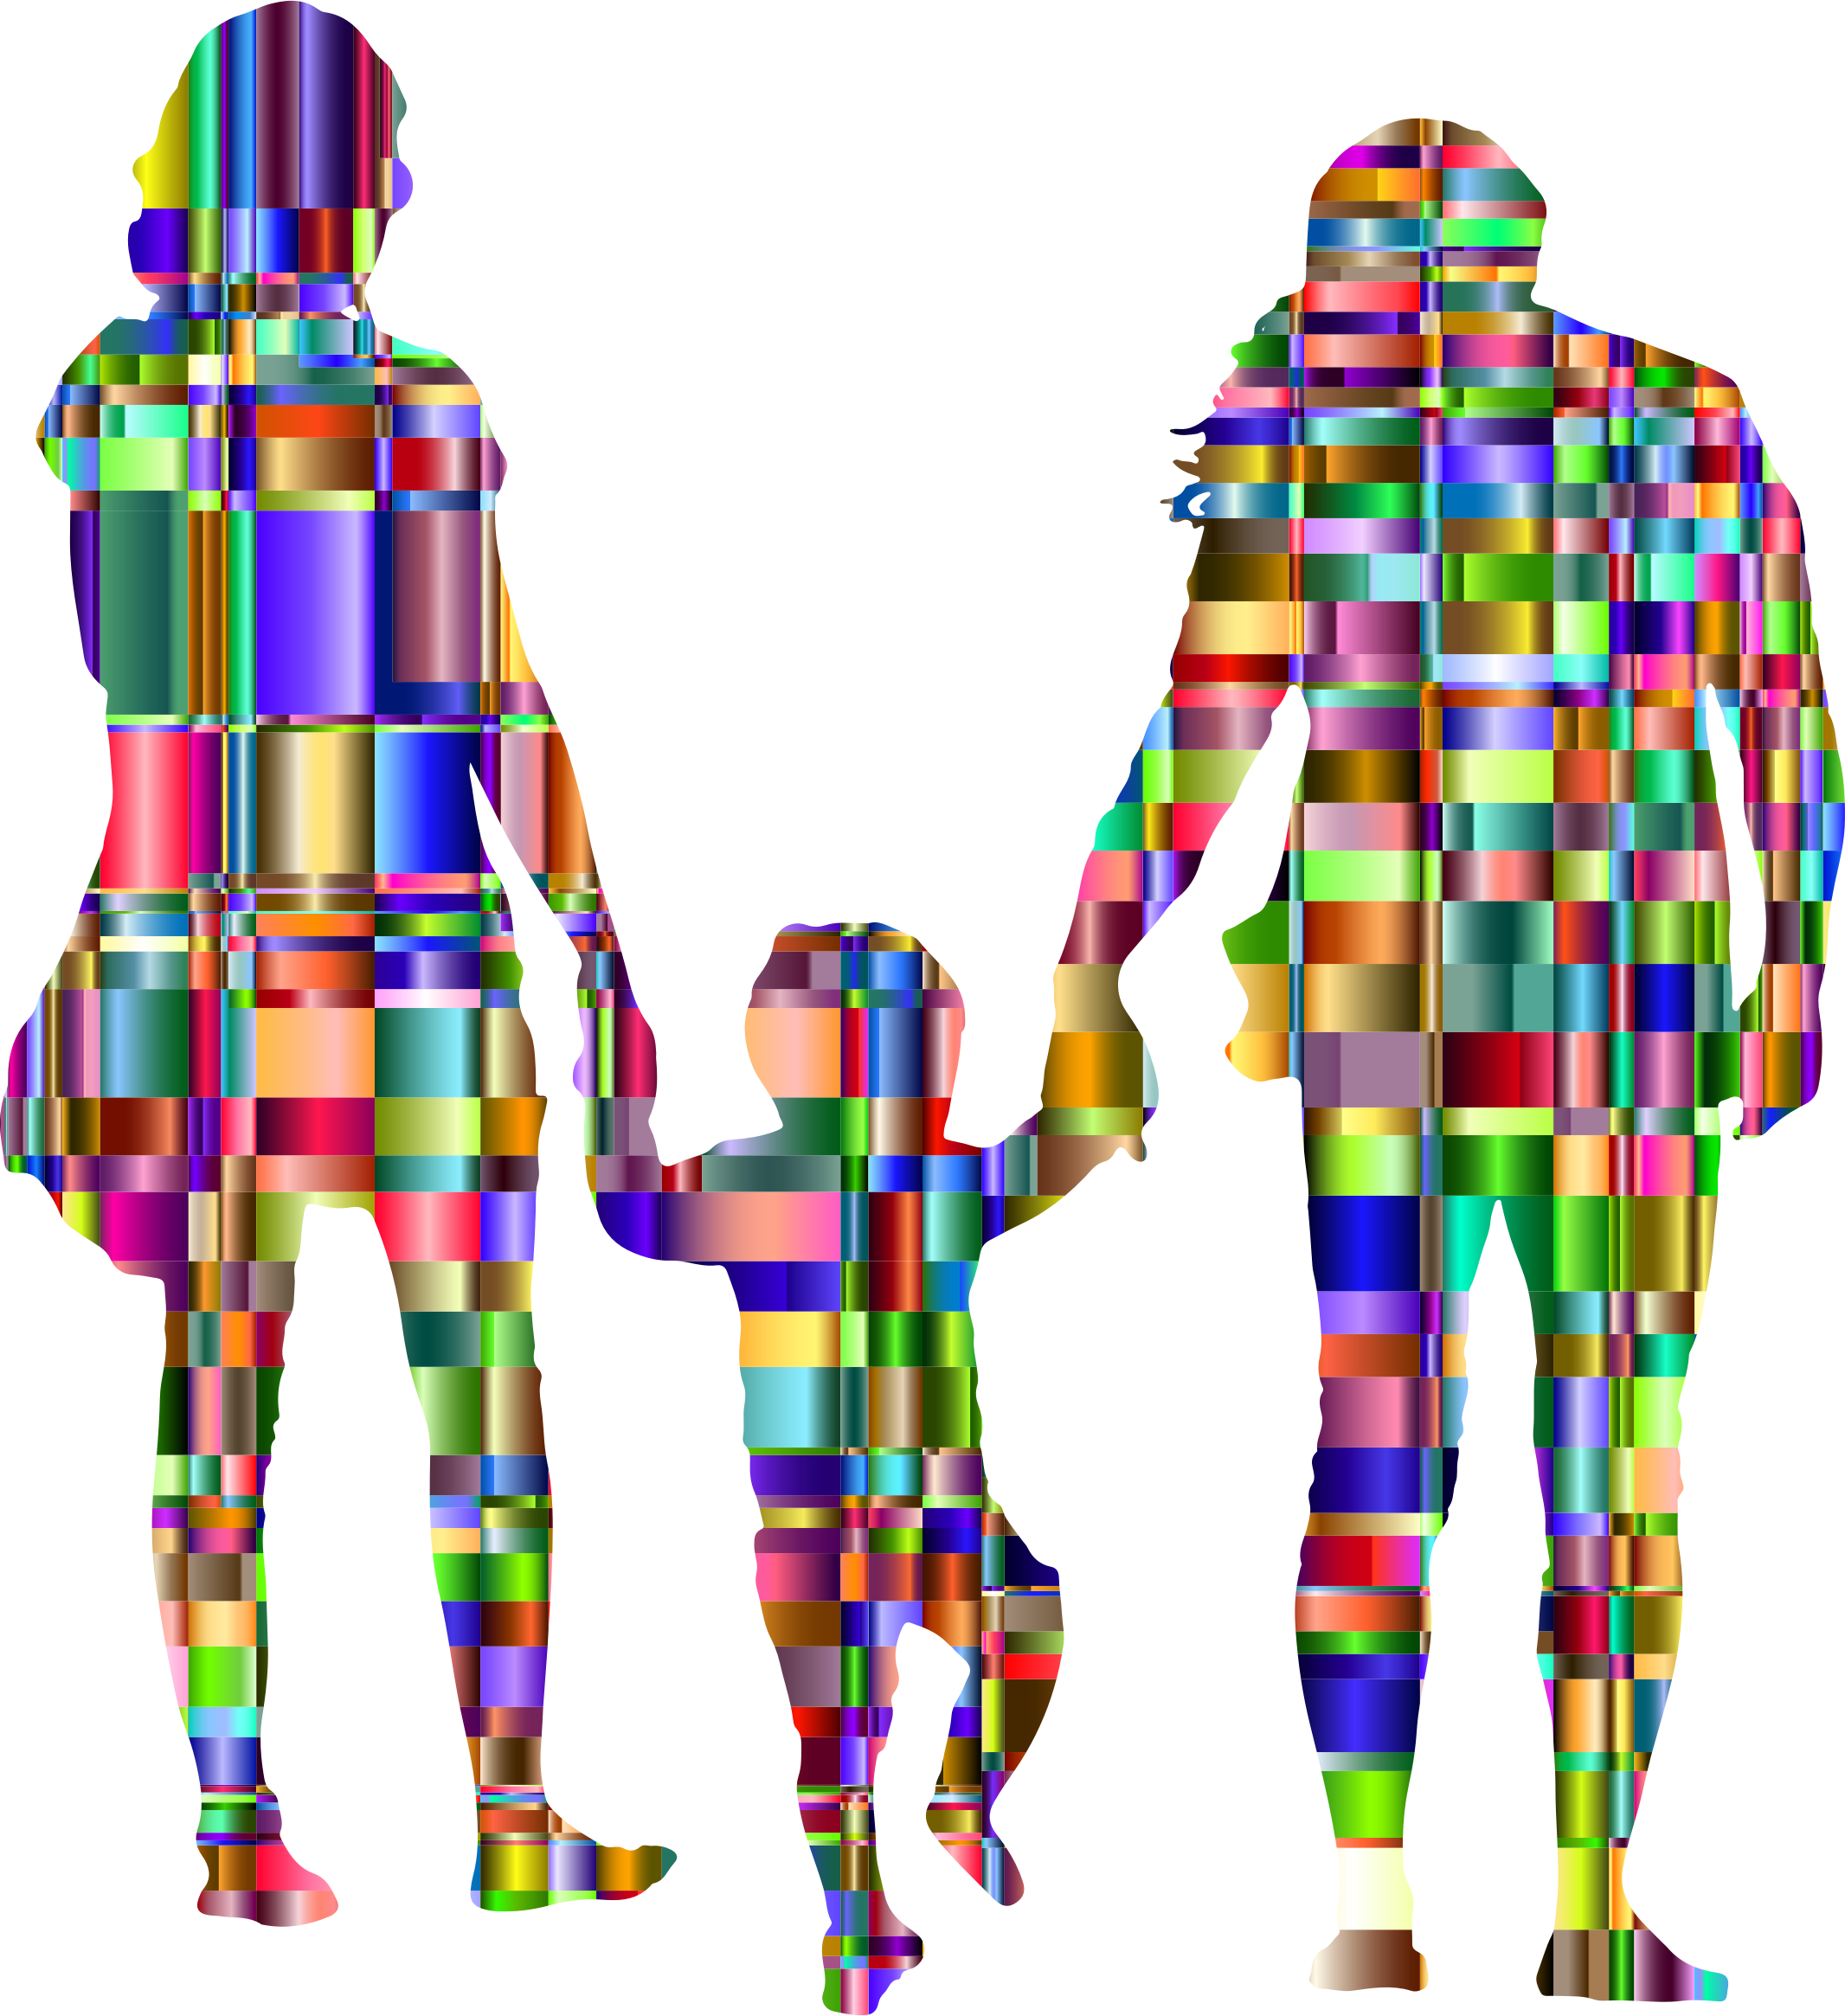 Chromatic Checkered Family With A Child In The Middle Silhouette by GDJ